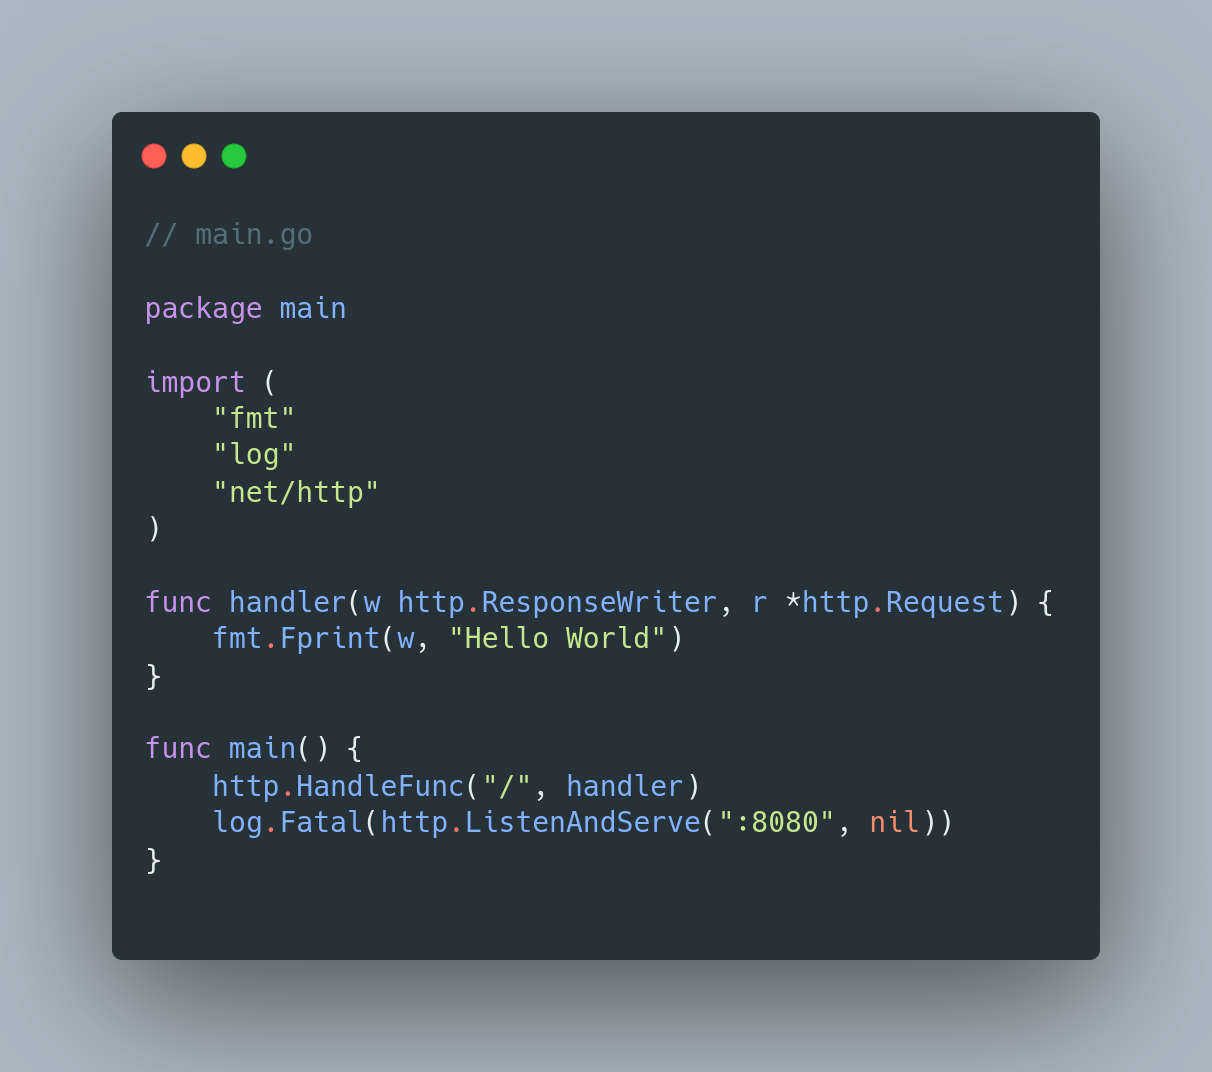 Code Snippet 1